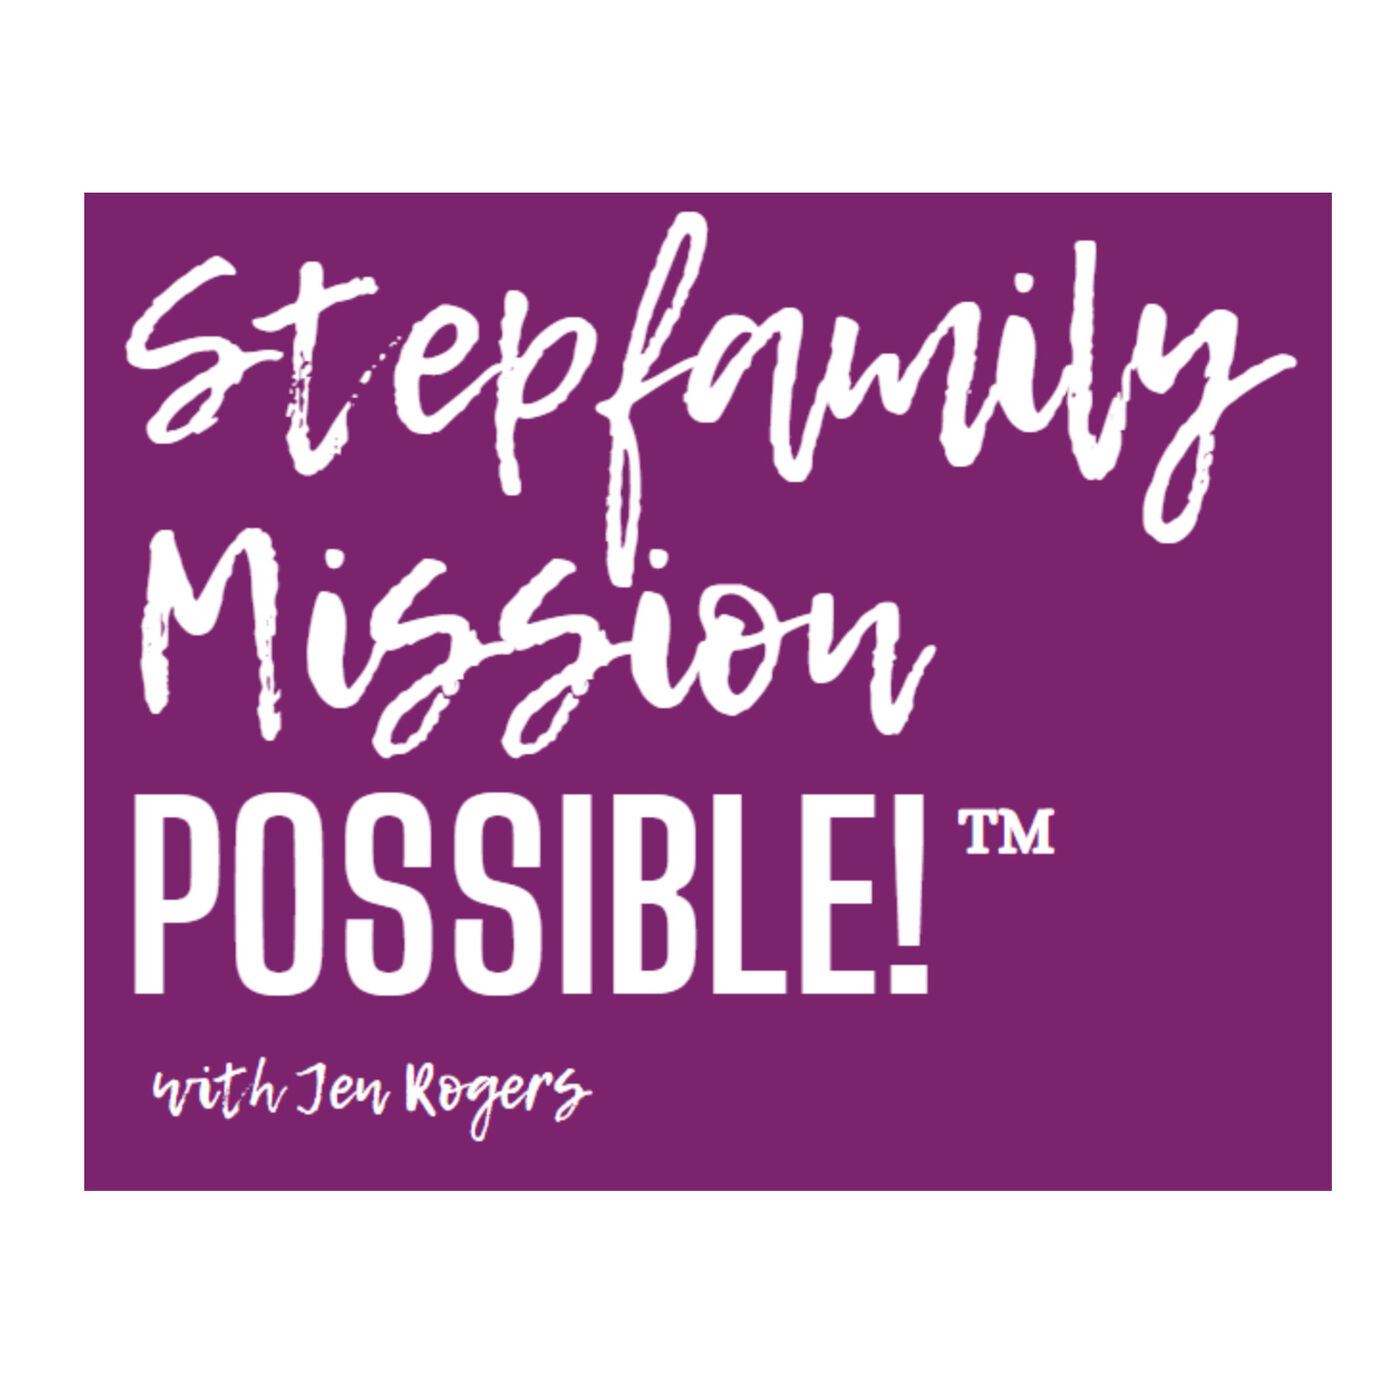 Stepfamily Mission POSSIBLE! | Featuring Jen Rogers #36